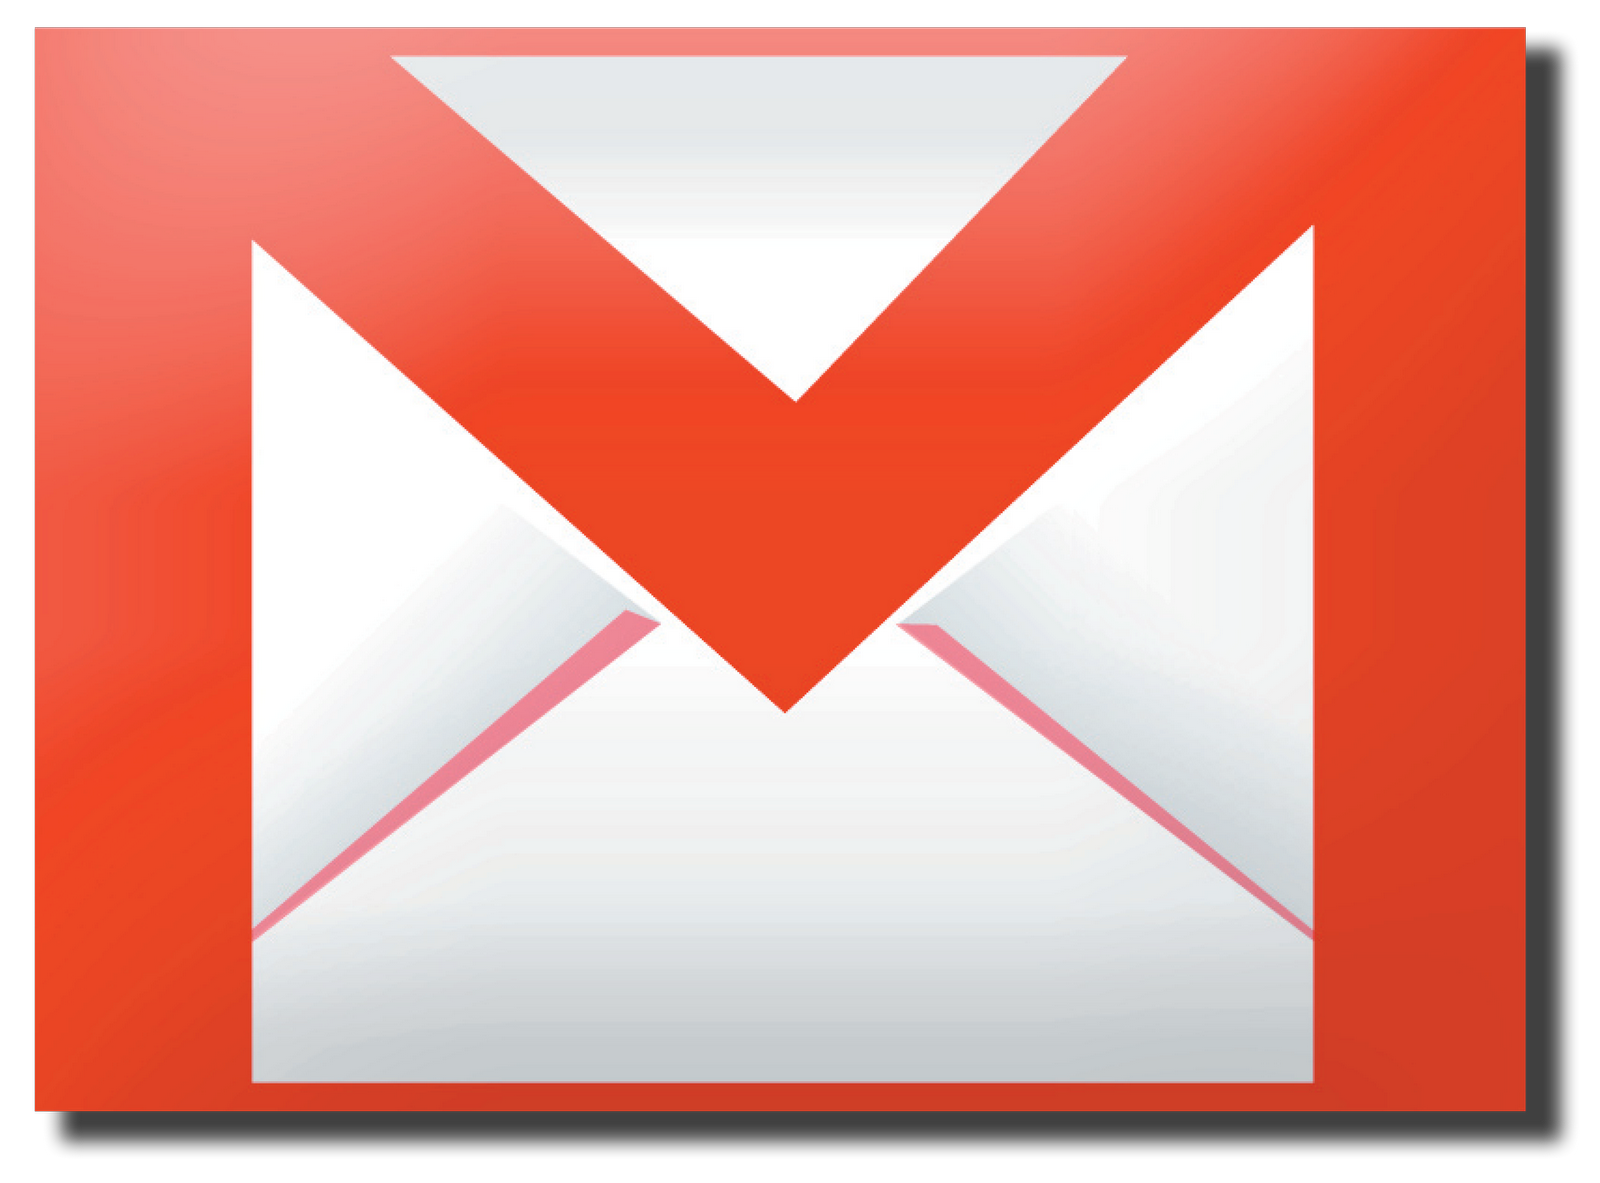 Gmail logo png transparent background. Images free download